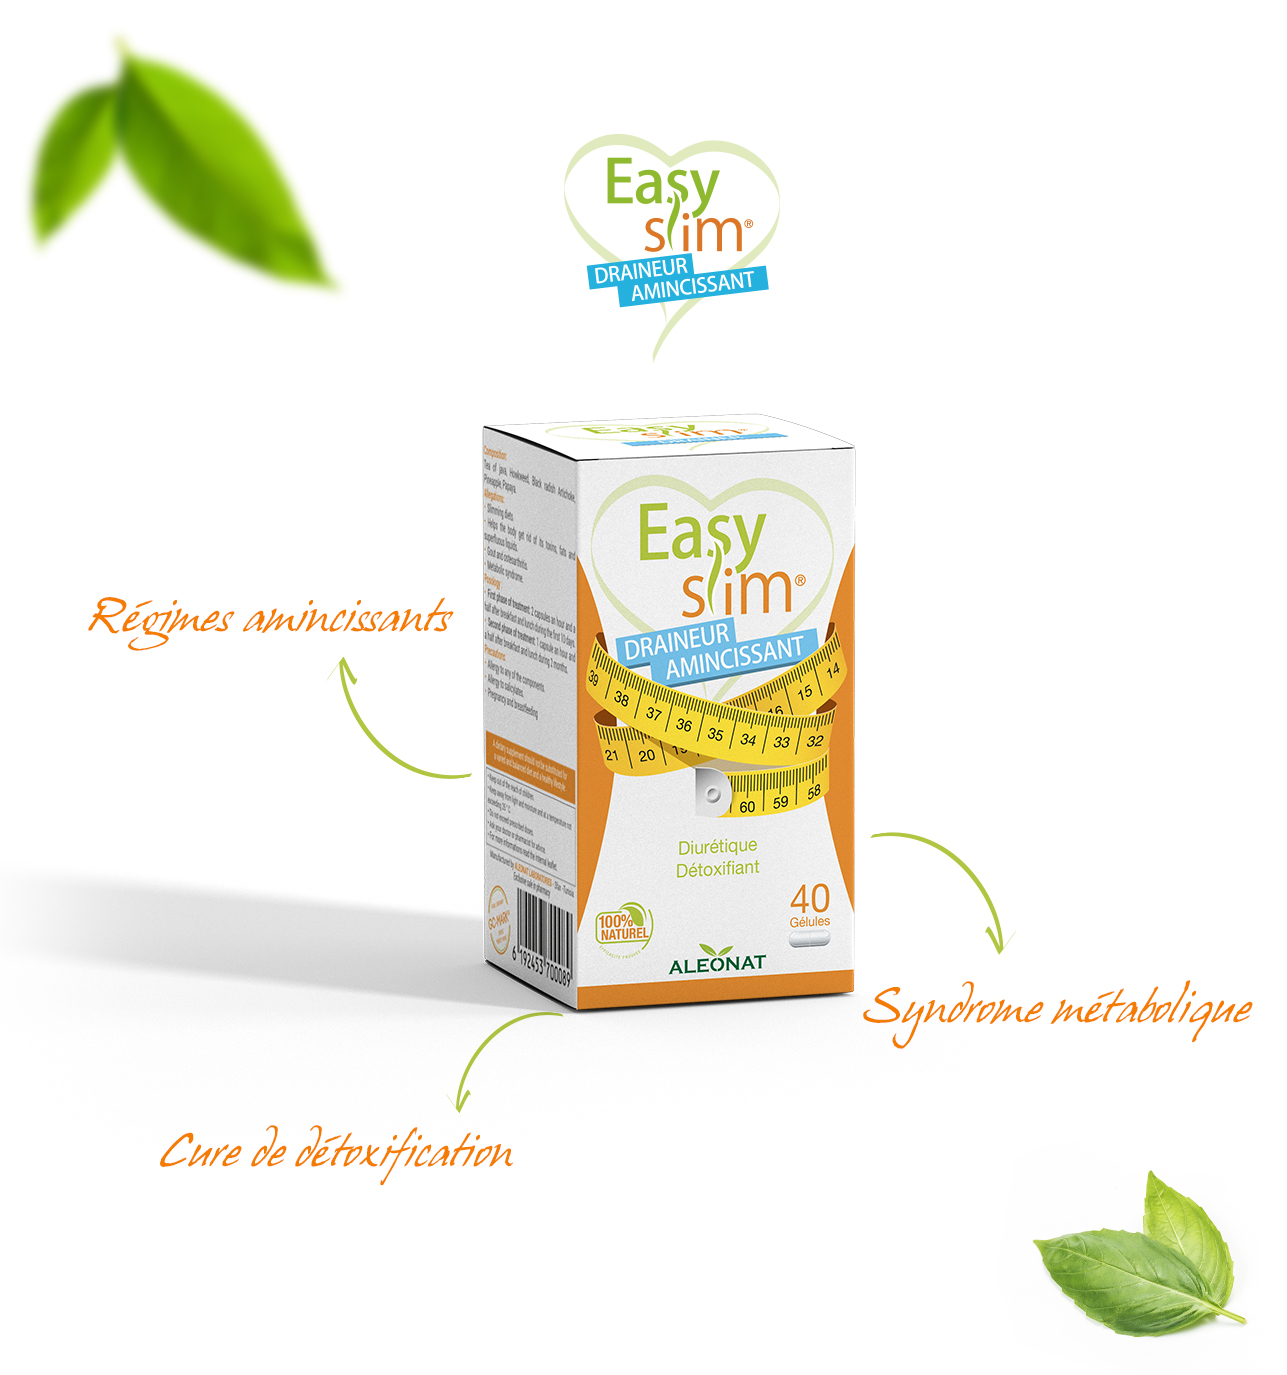 EASY SLIM DRAINEUR